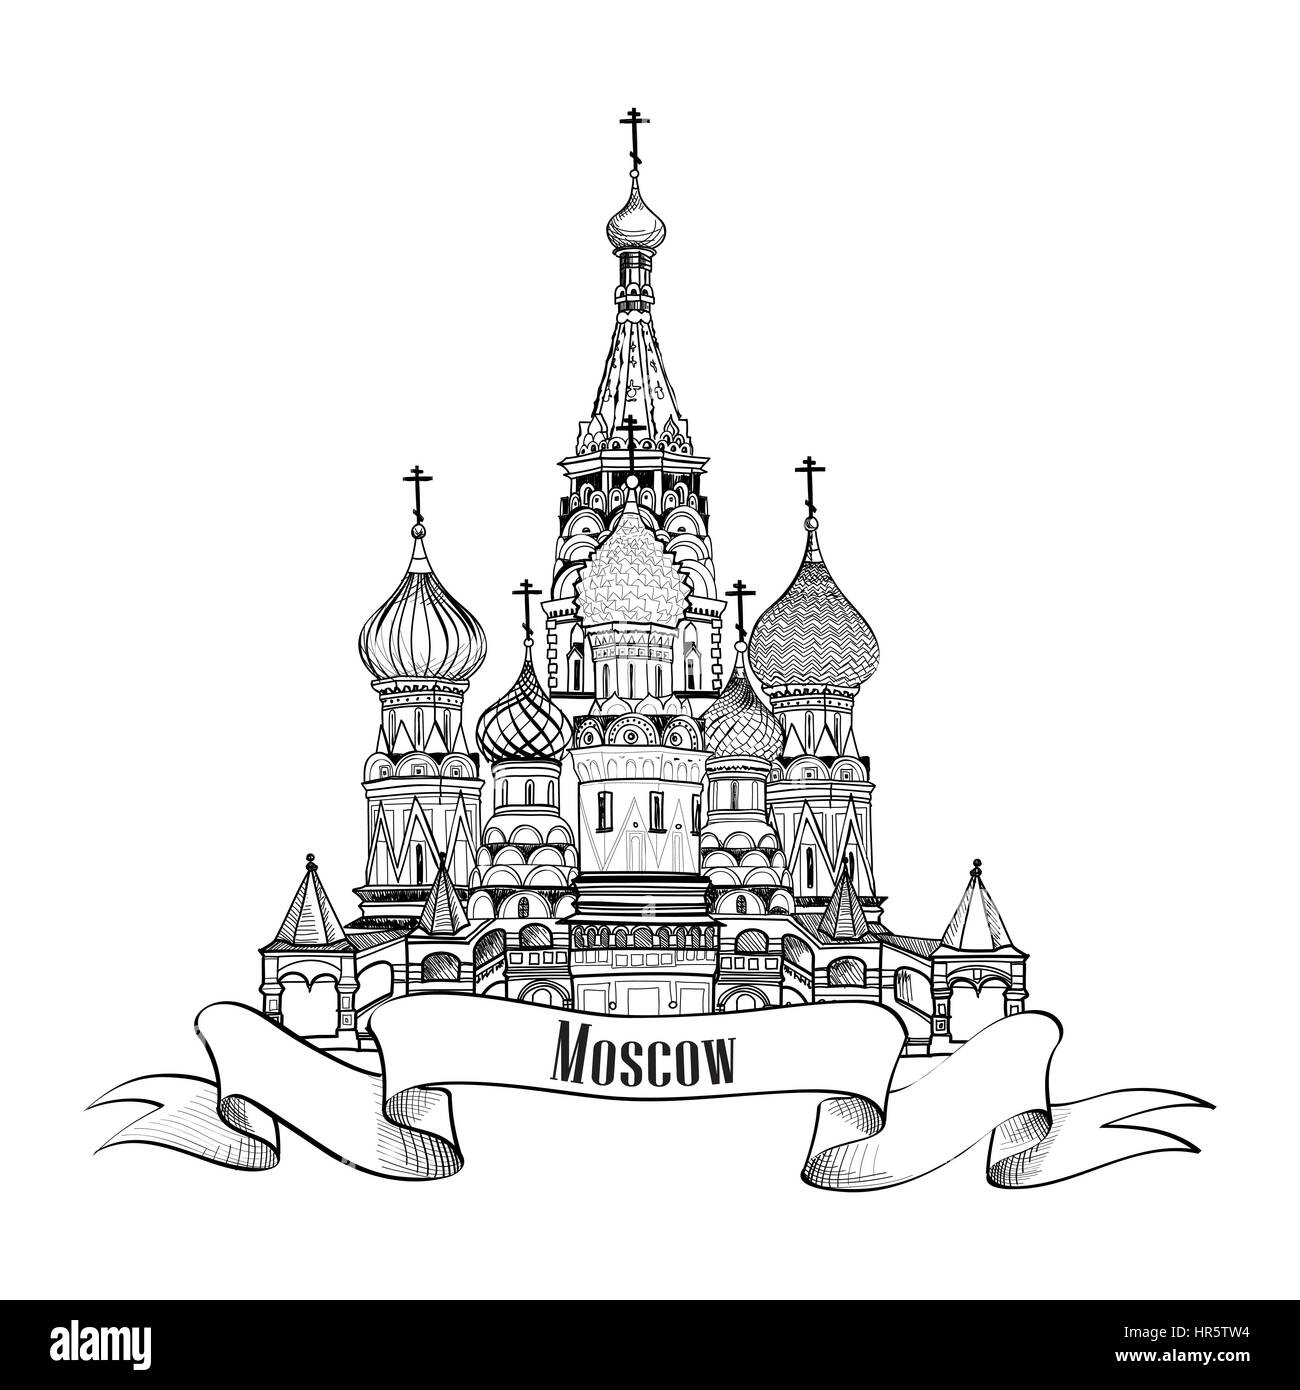 Moscow City Symbol. St Basil's Cathedral, Red Square, Kremlin, Moscow, Russia. Travel icon vector hand drawn - Stock Image